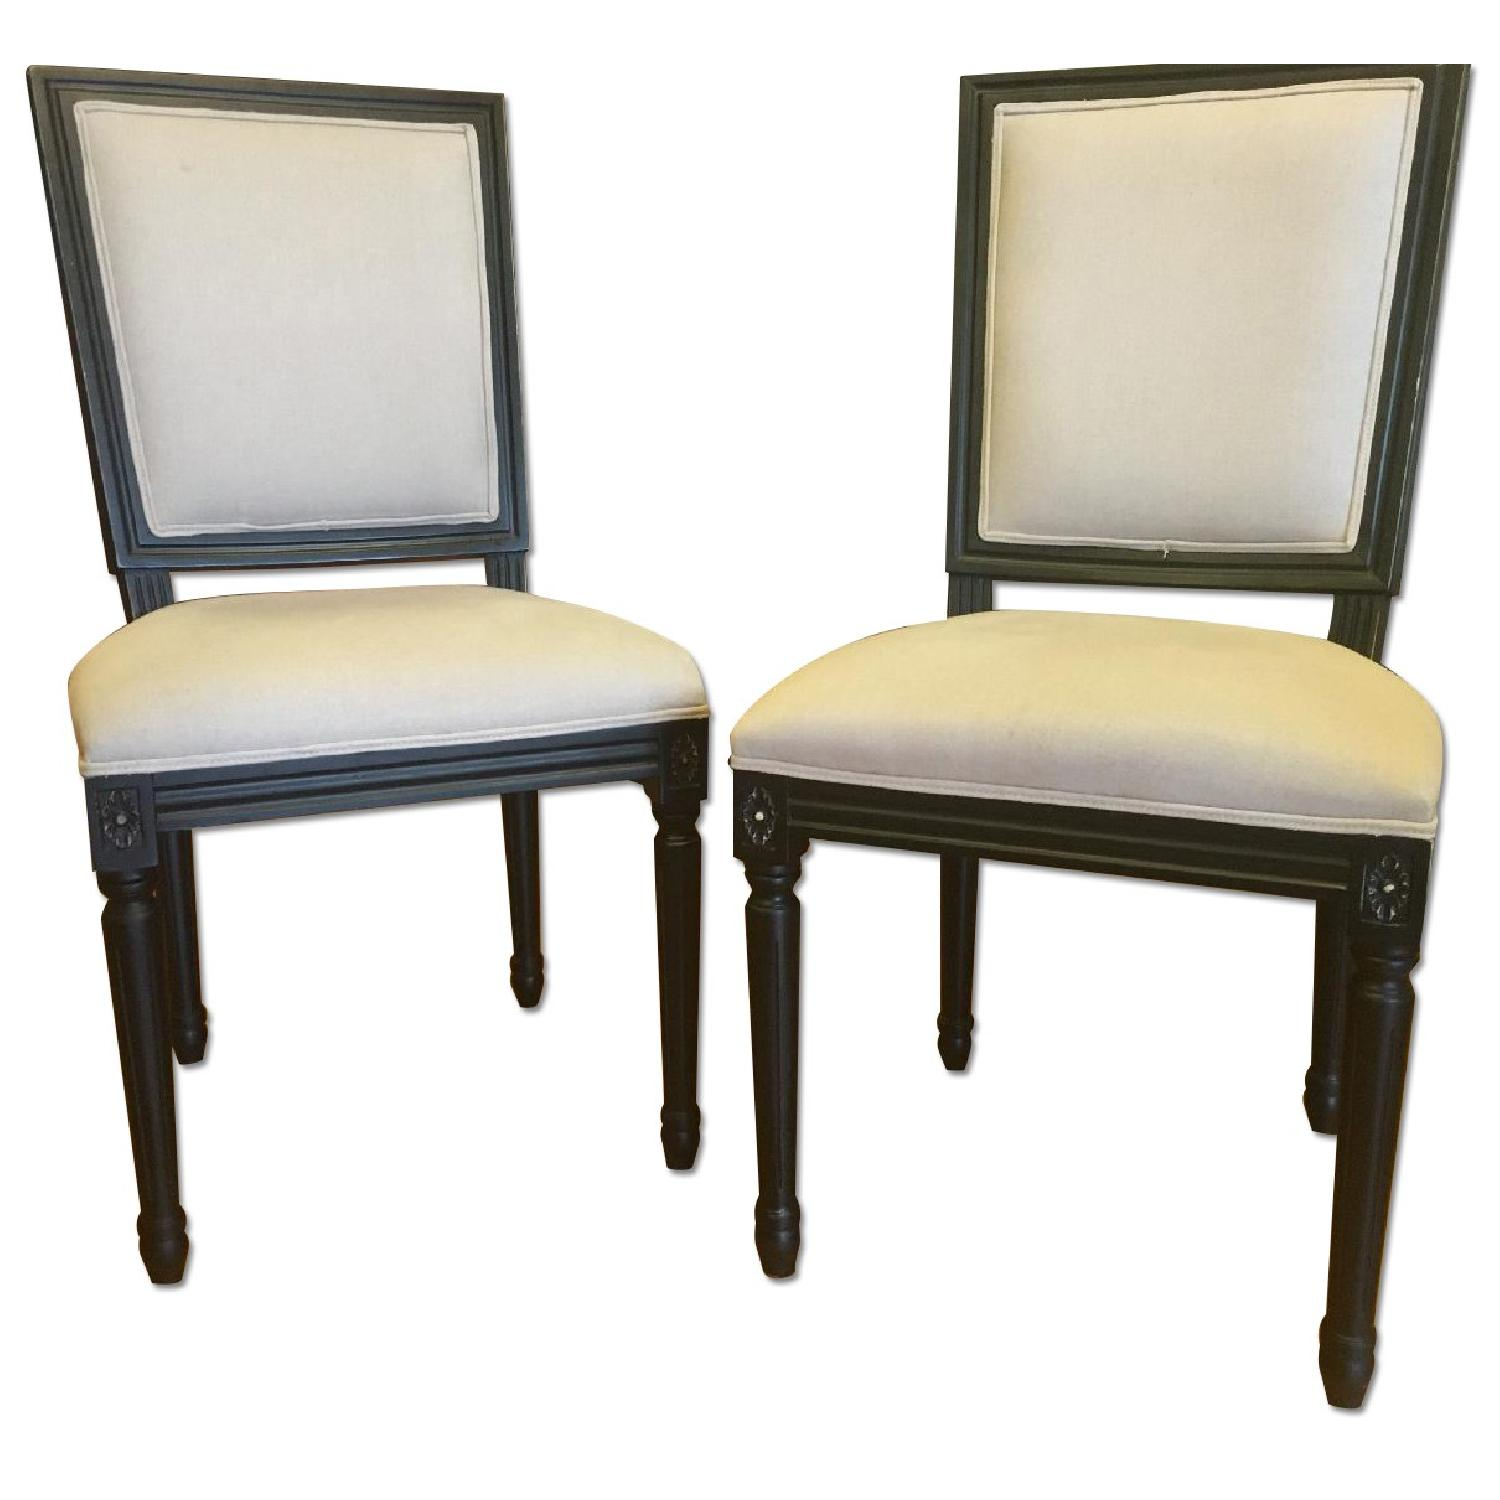 Safavieh Dining Chairs in Black & Gray - image-0